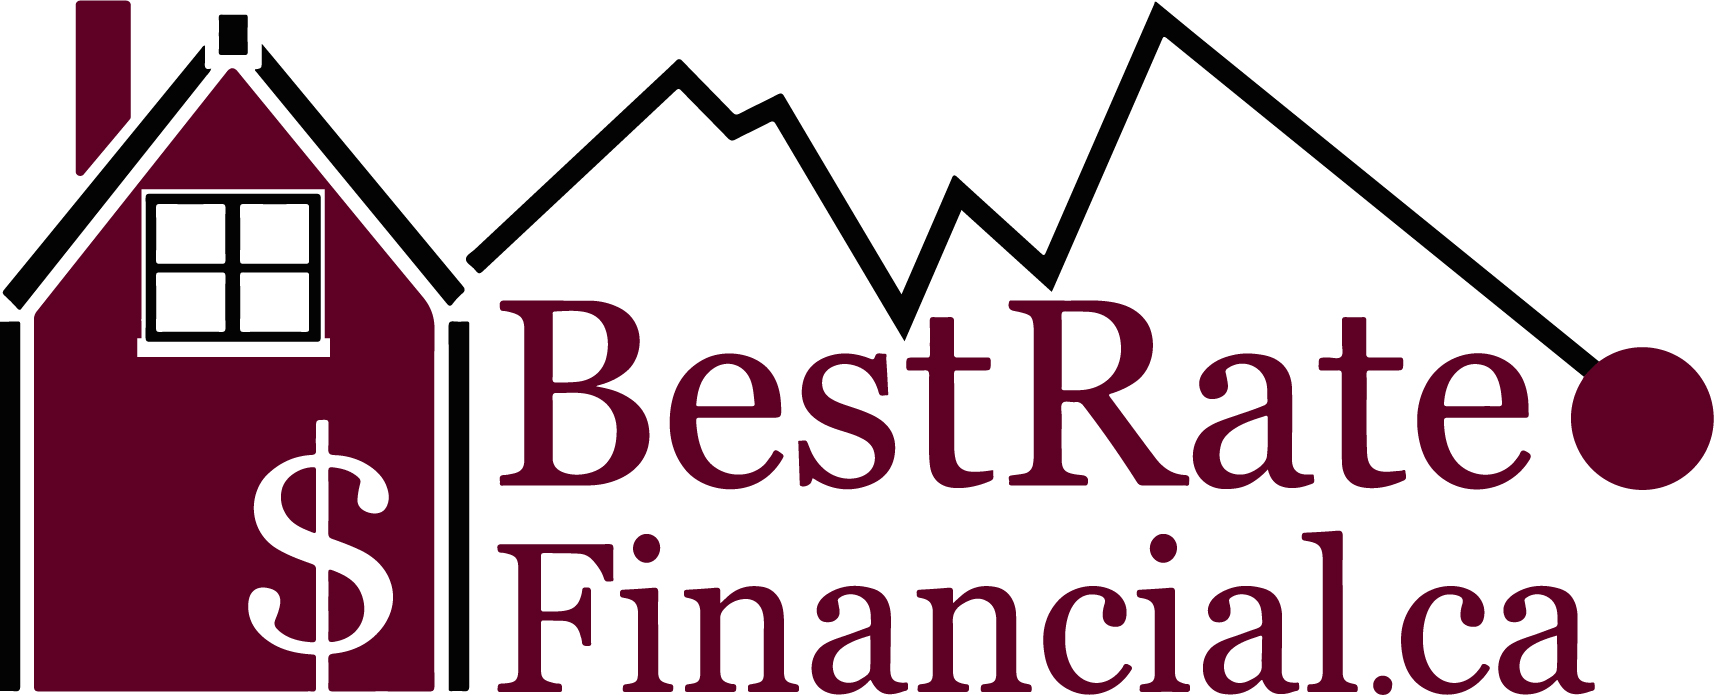 Best Rate Financial